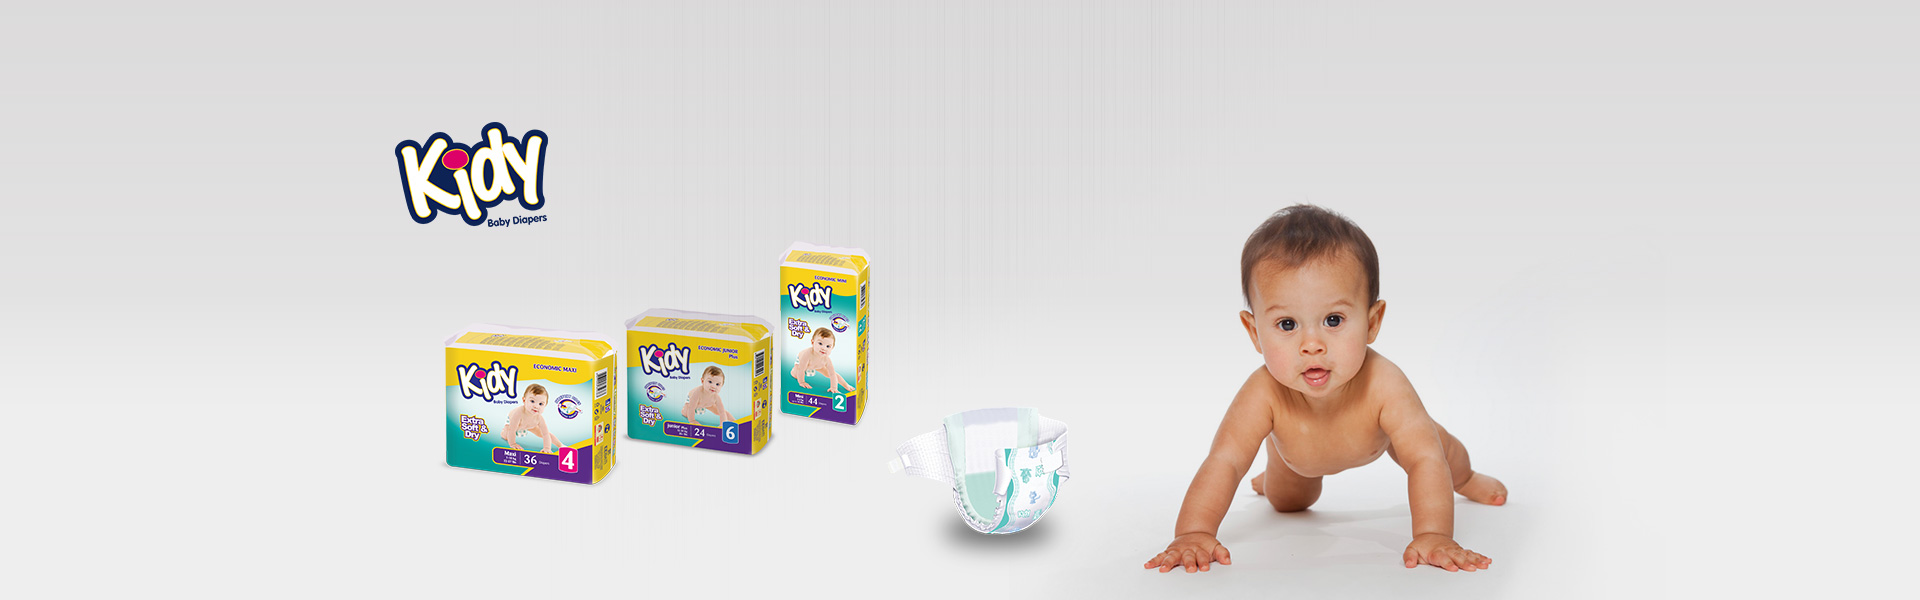 kidy baby diapers